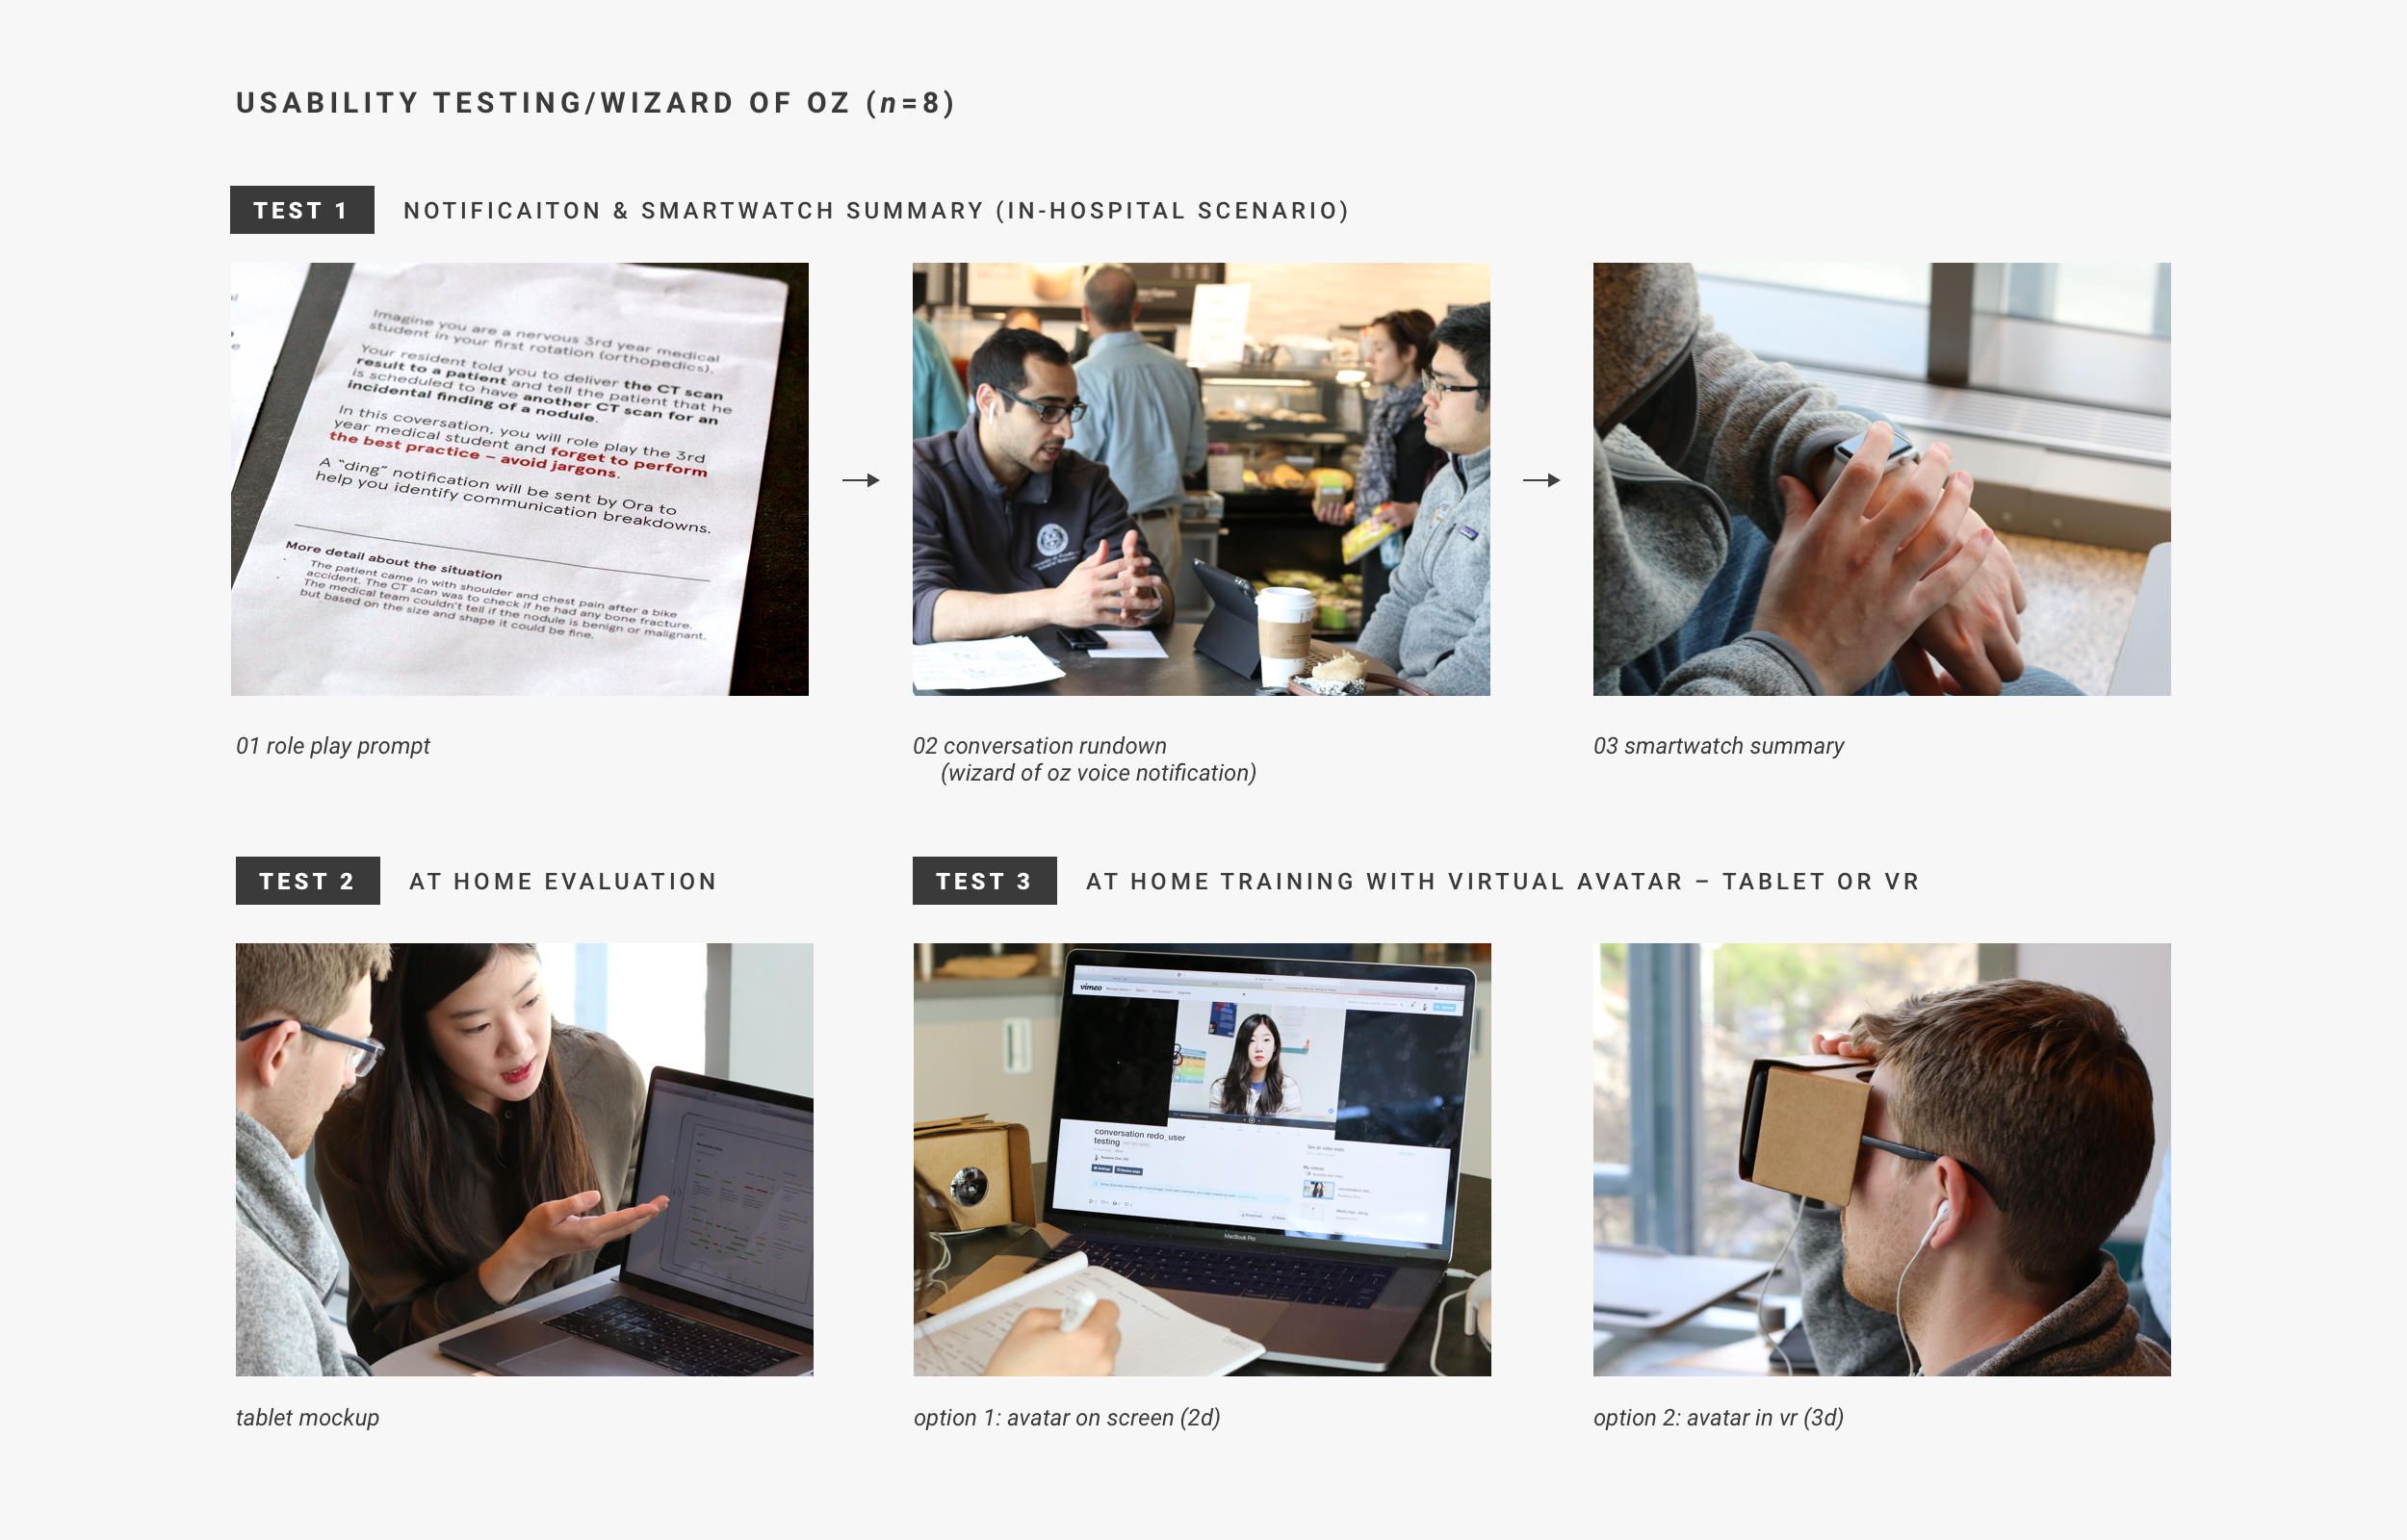 05-1 Usability Testing.png